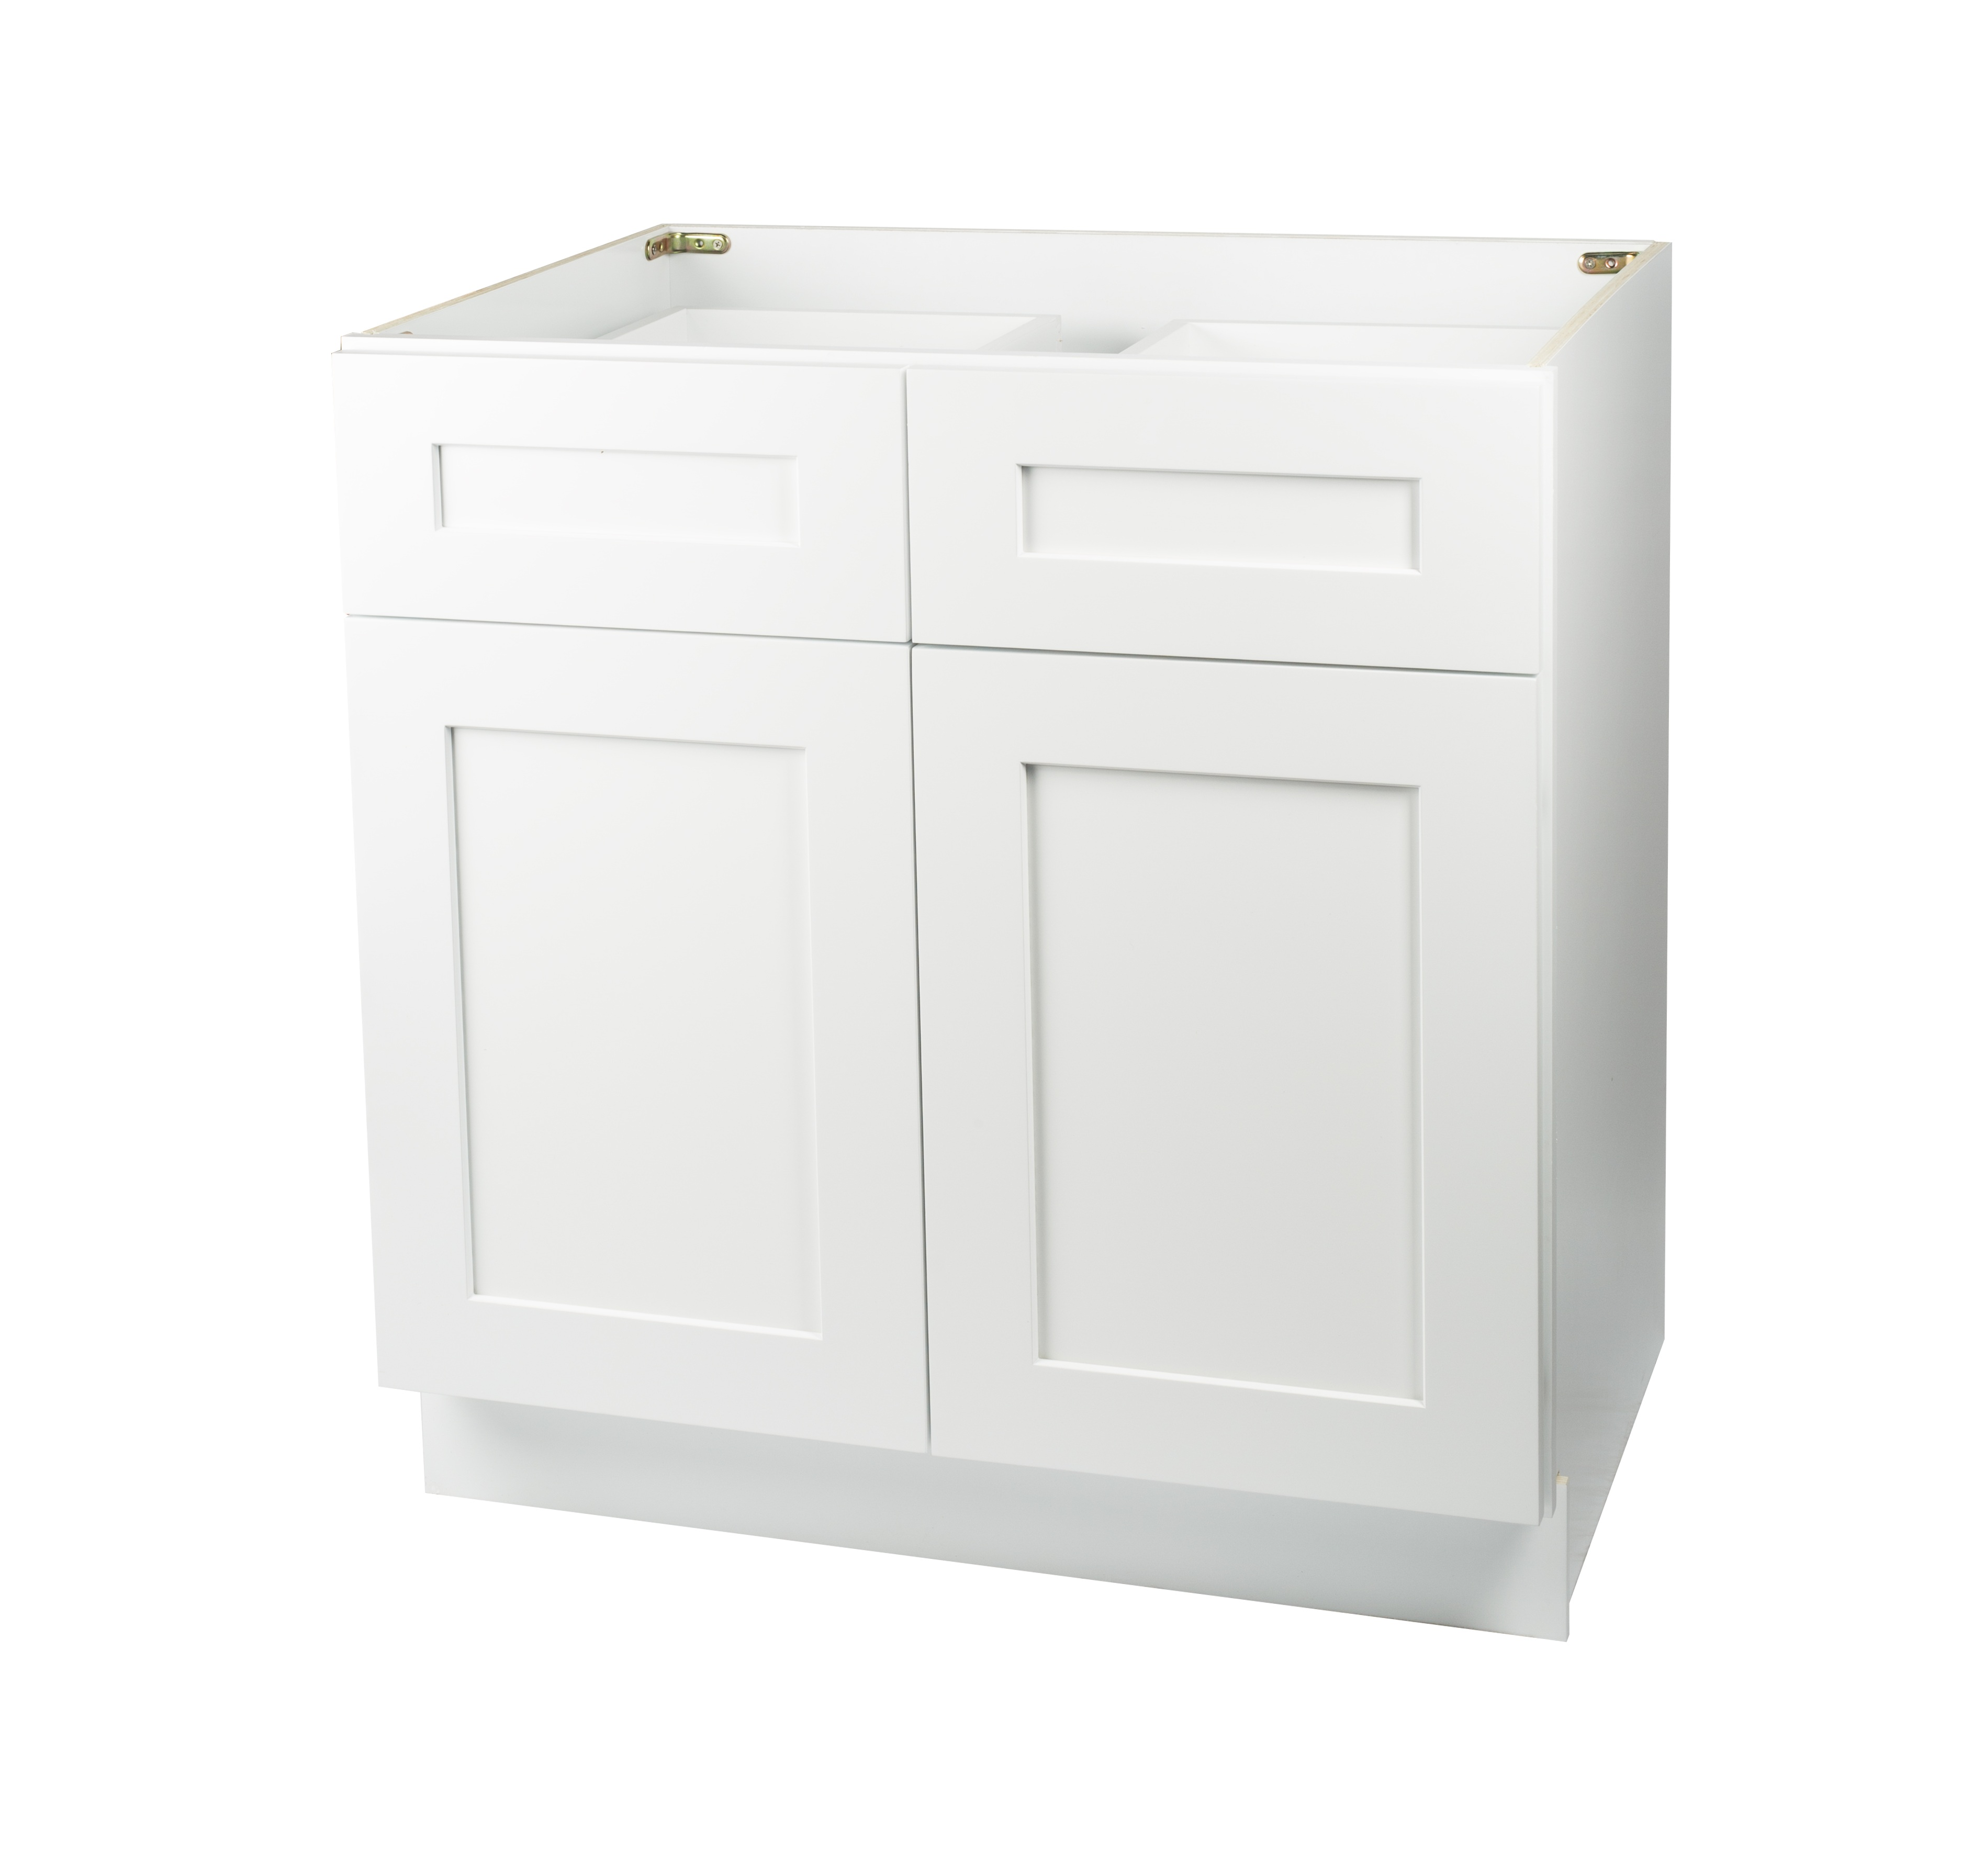 Ready to Assemble 39Wx34.5Hx24D in. Shaker Base Cabinet with 2 Door and 2 Drawer in White